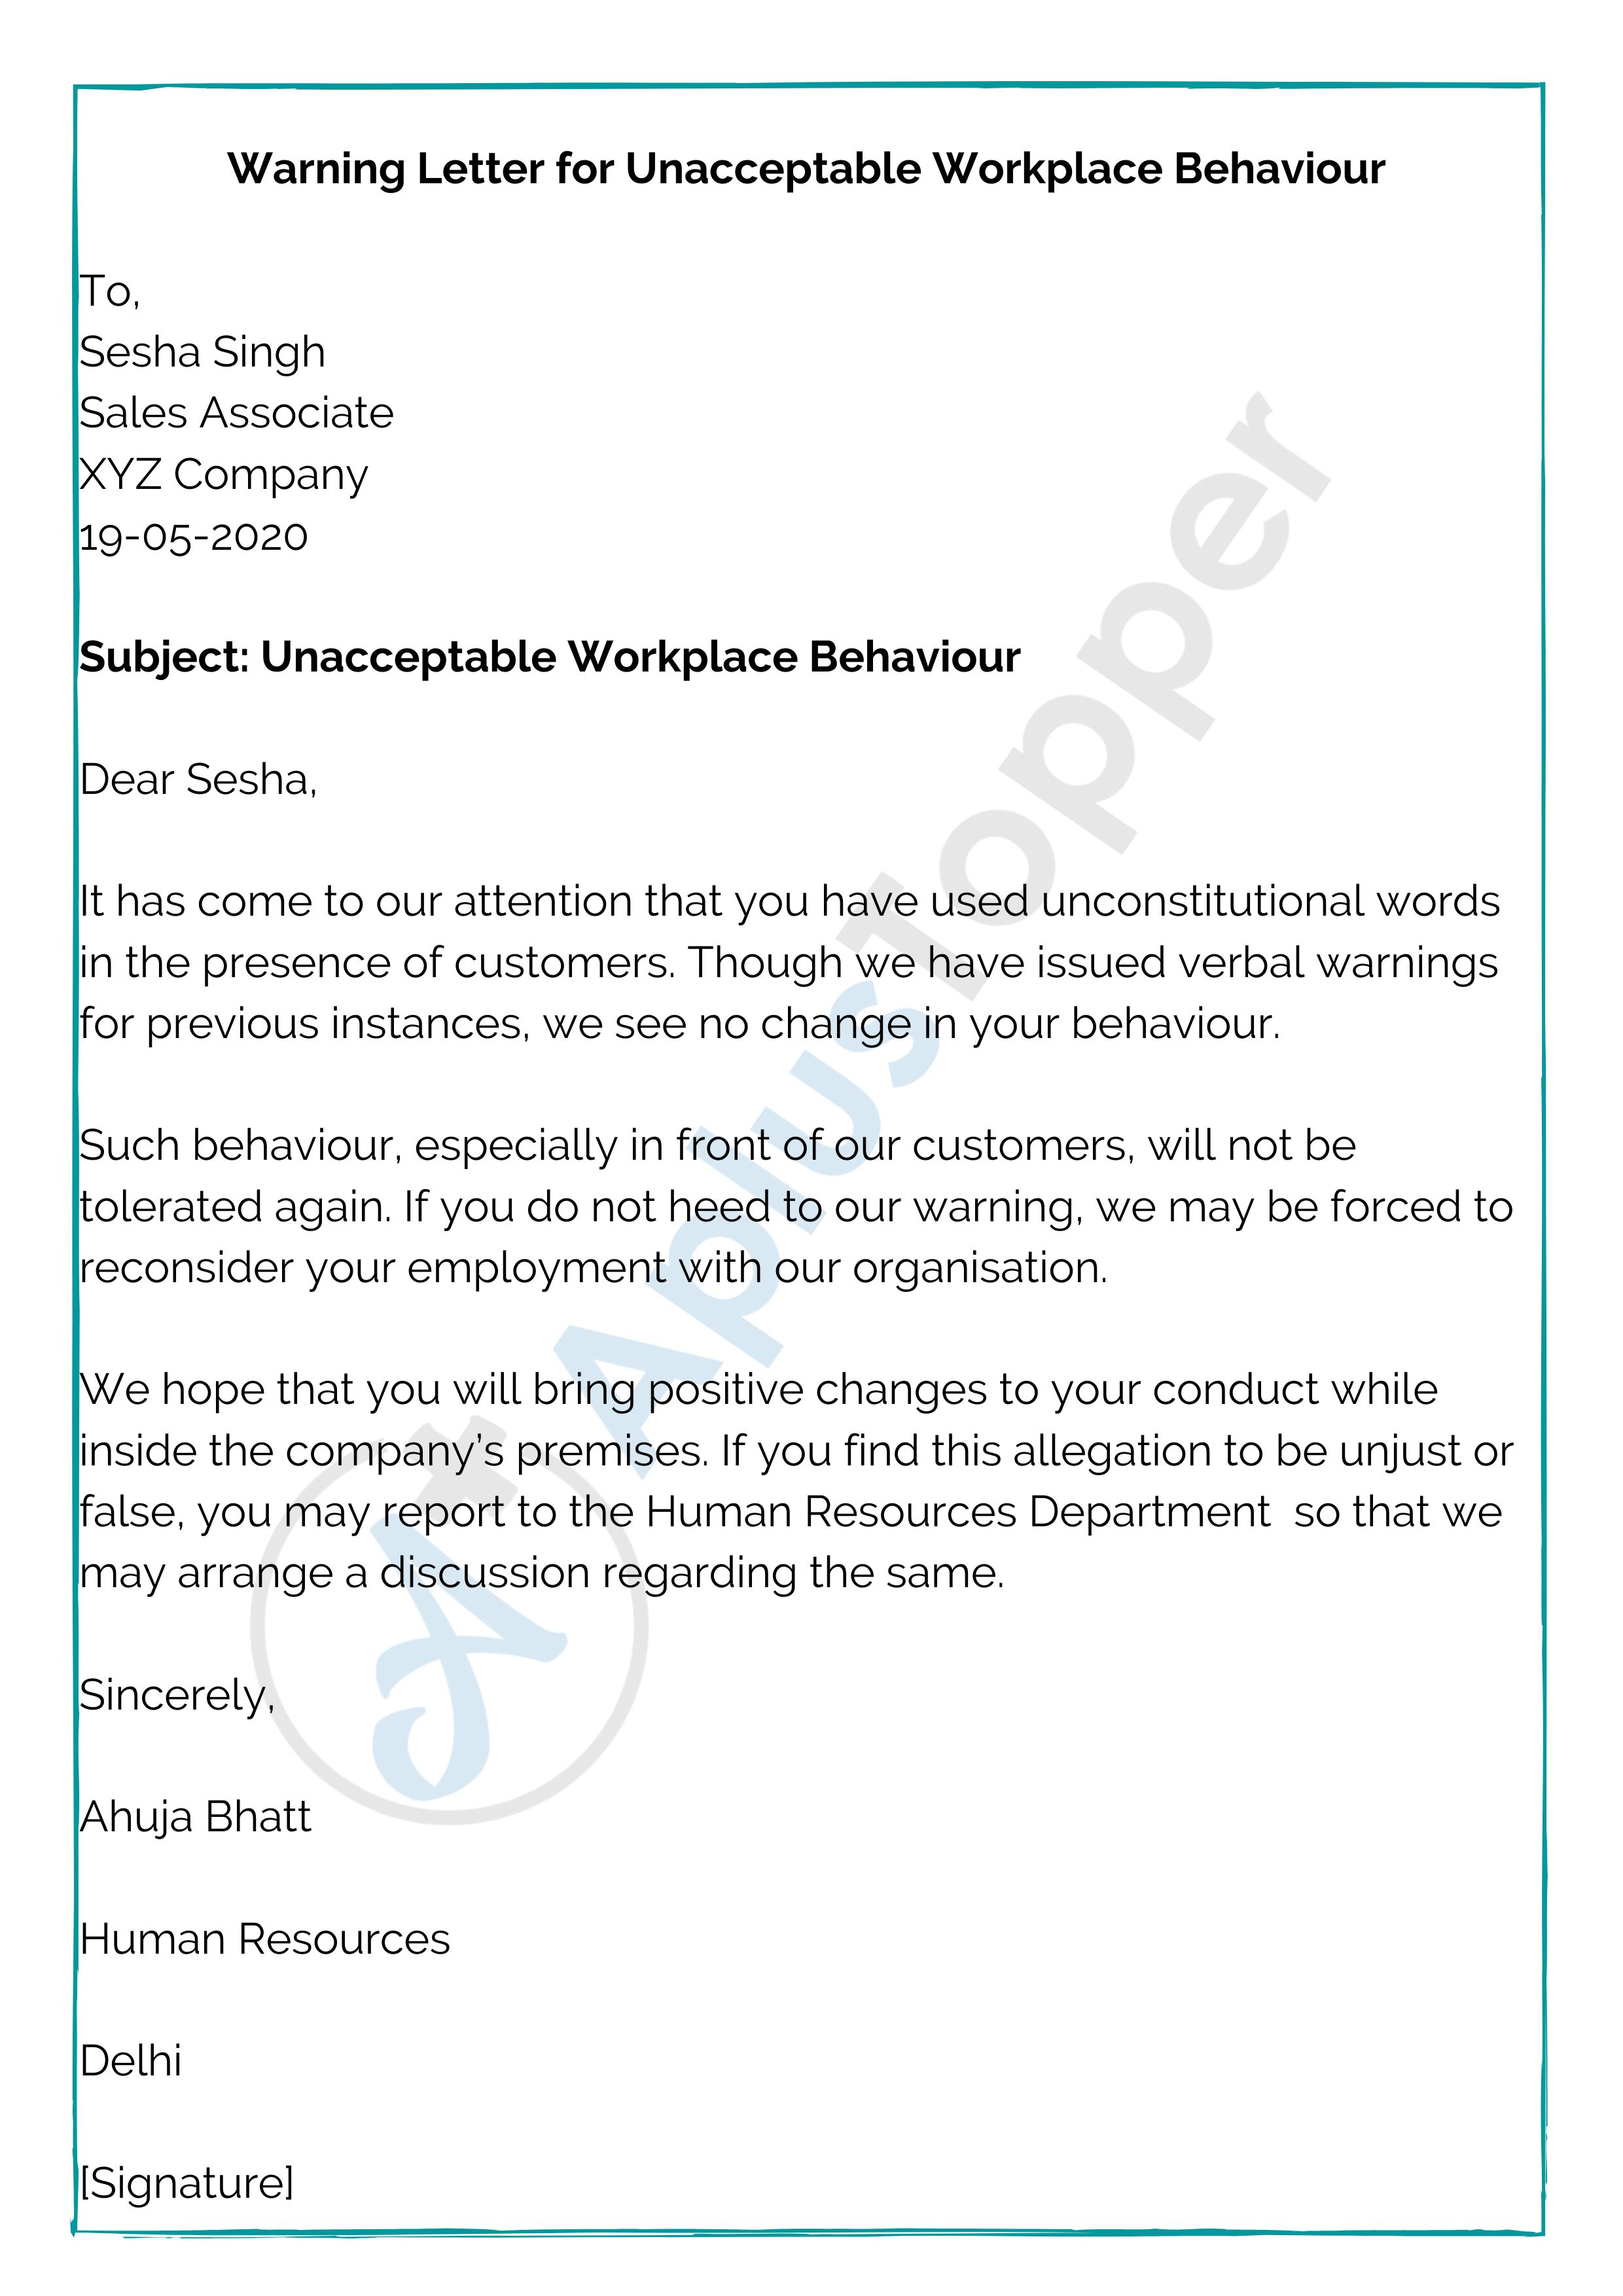 Warning Letter for Unacceptable Workplace Behaviour